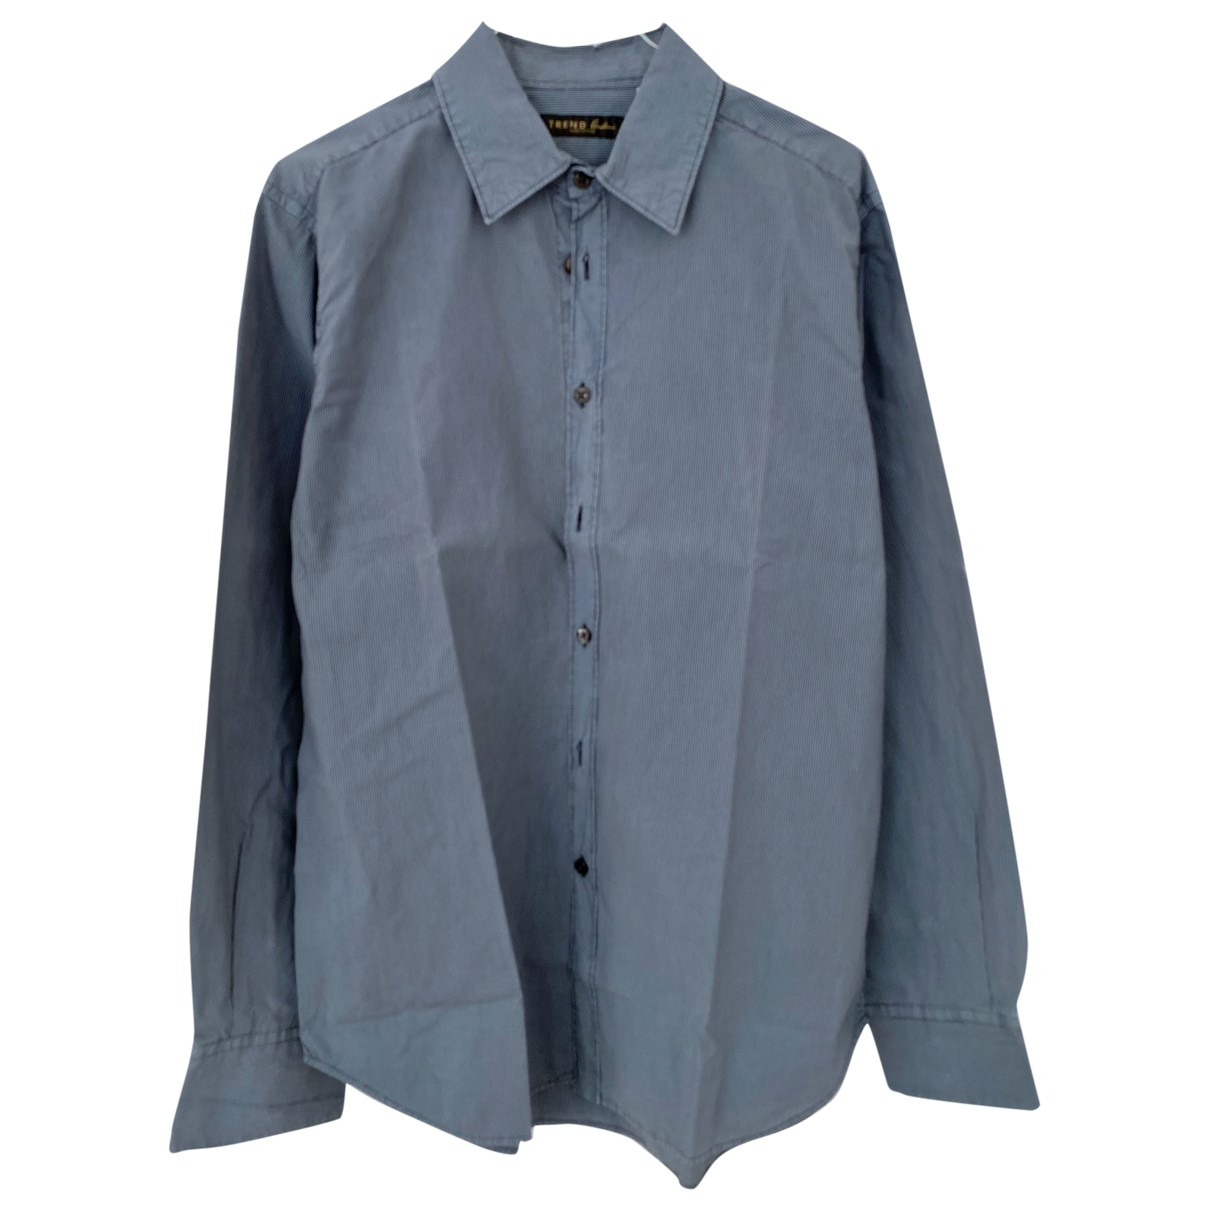 Corneliani \N Blue Cotton Shirts for Men 41 EU (tour de cou / collar)